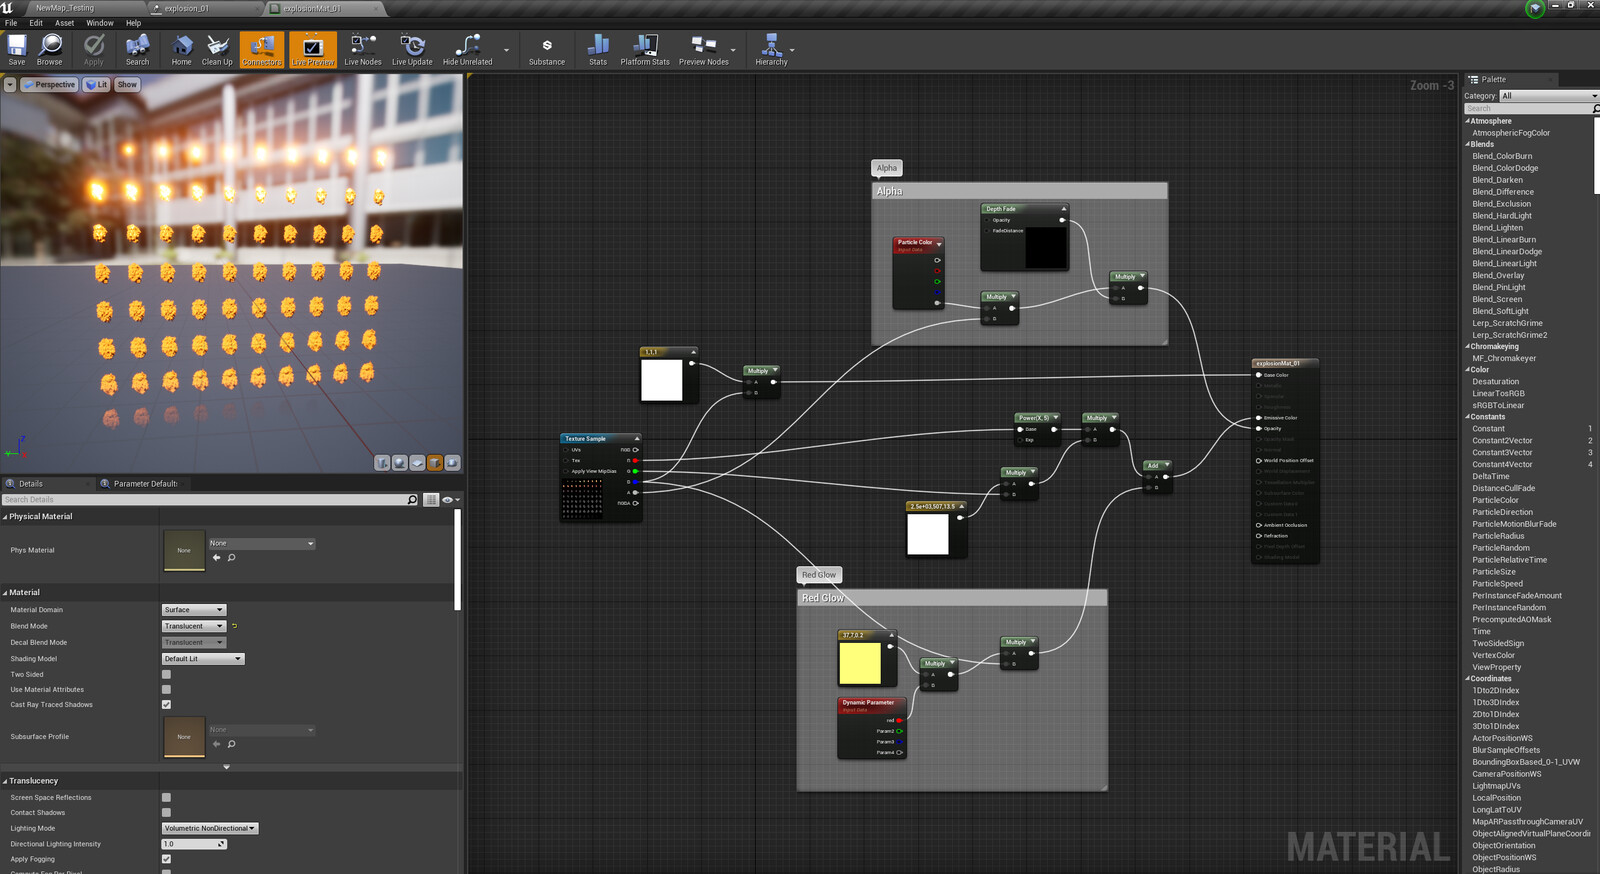 Unreal engine Screen Capture Explosion shader graph